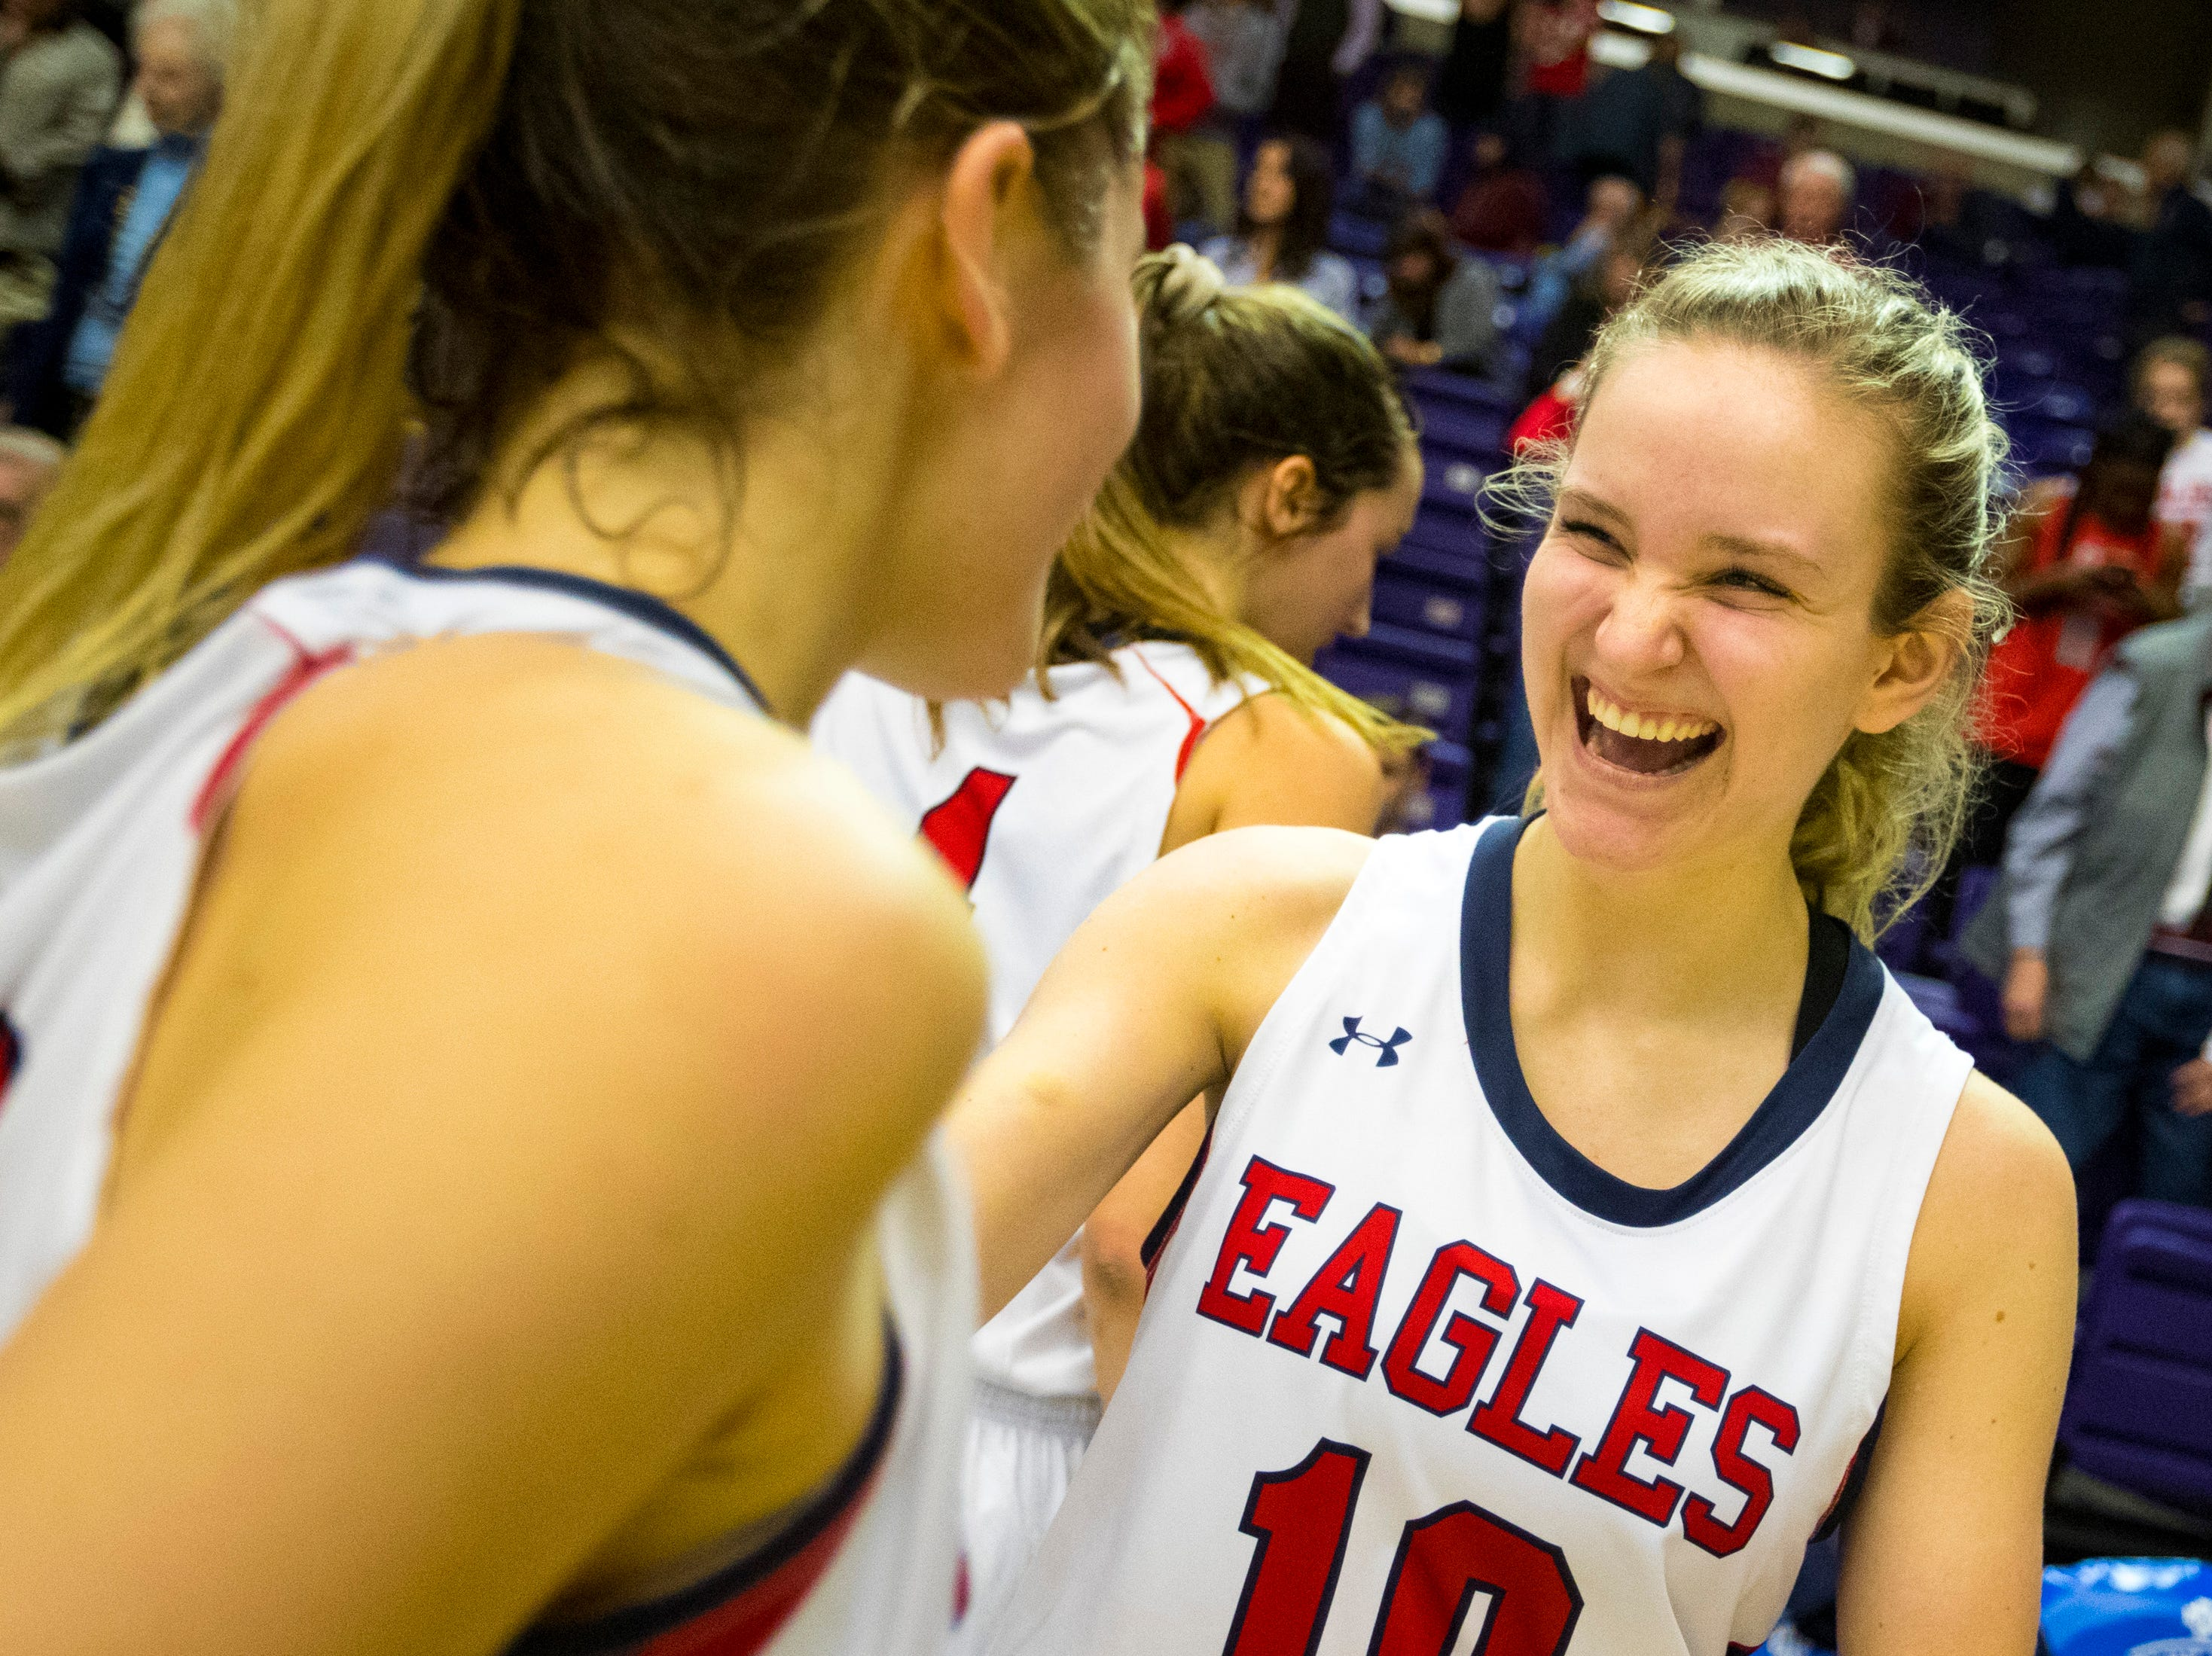 Brentwood Academy's Blair Schoenwald (10) celebrates with Brentwood Academy's Avery Kovick (22) after Brentwood Academy's game against Father Ryan in the semifinal round of the TSSAA Division II Class AA State Championships at Lipscomb University's Allen Arena in Nashville on Thursday, Feb. 28, 2019.